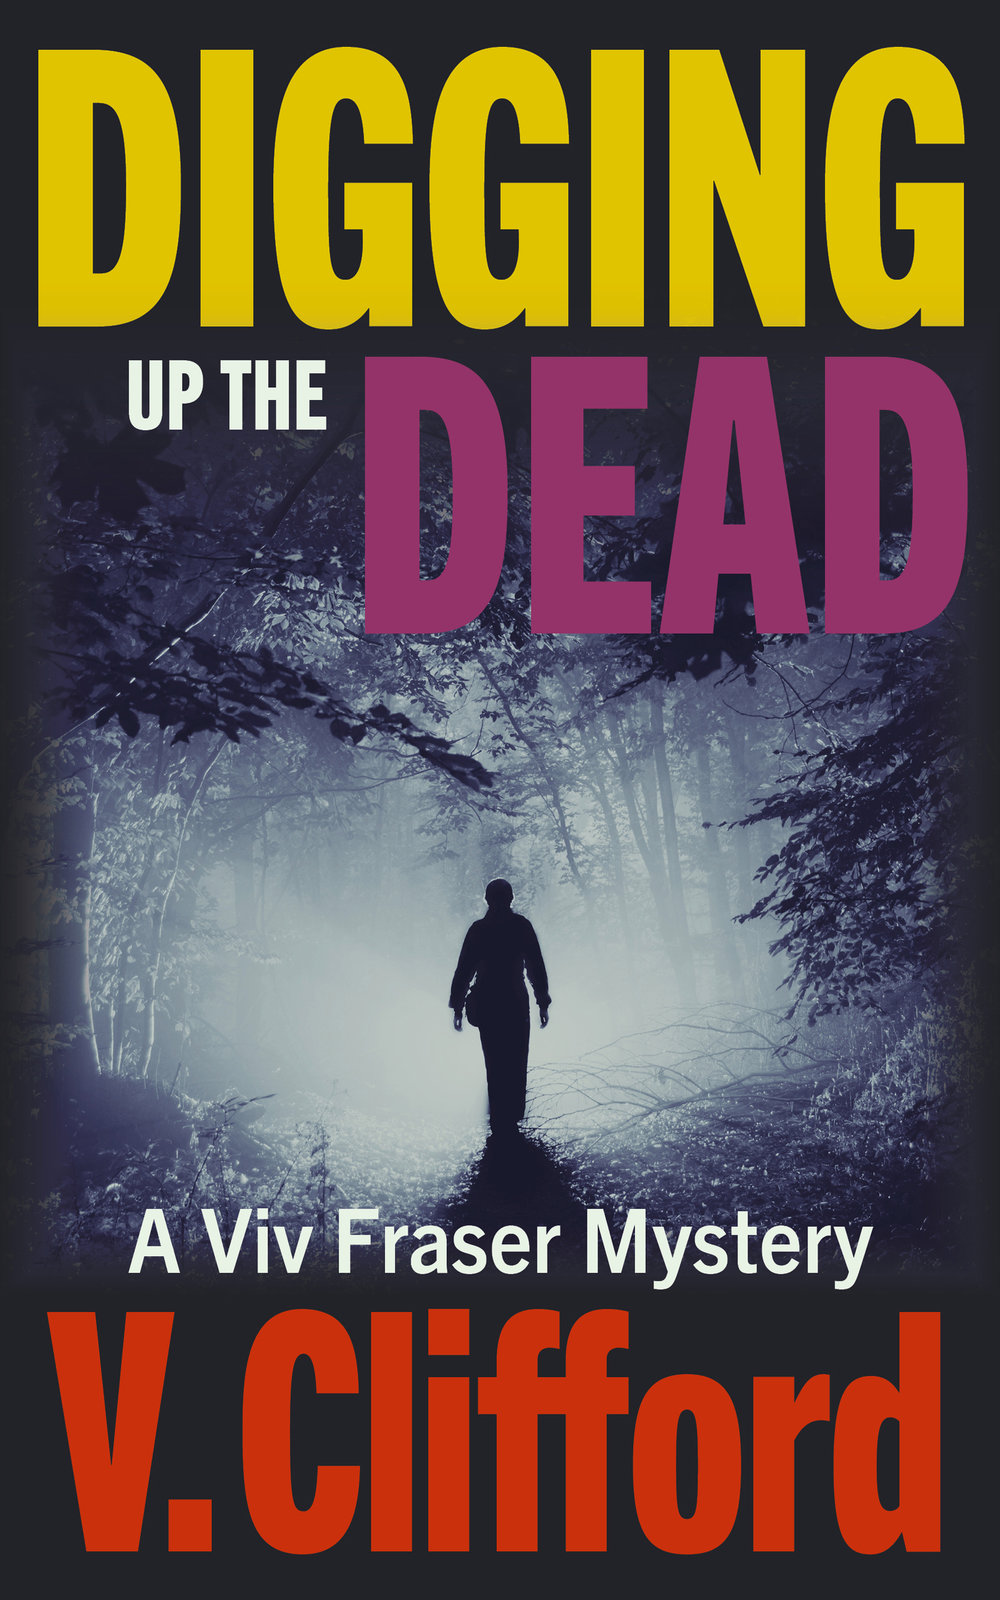 Digging up the Dead by V Clifford version 2.jpg